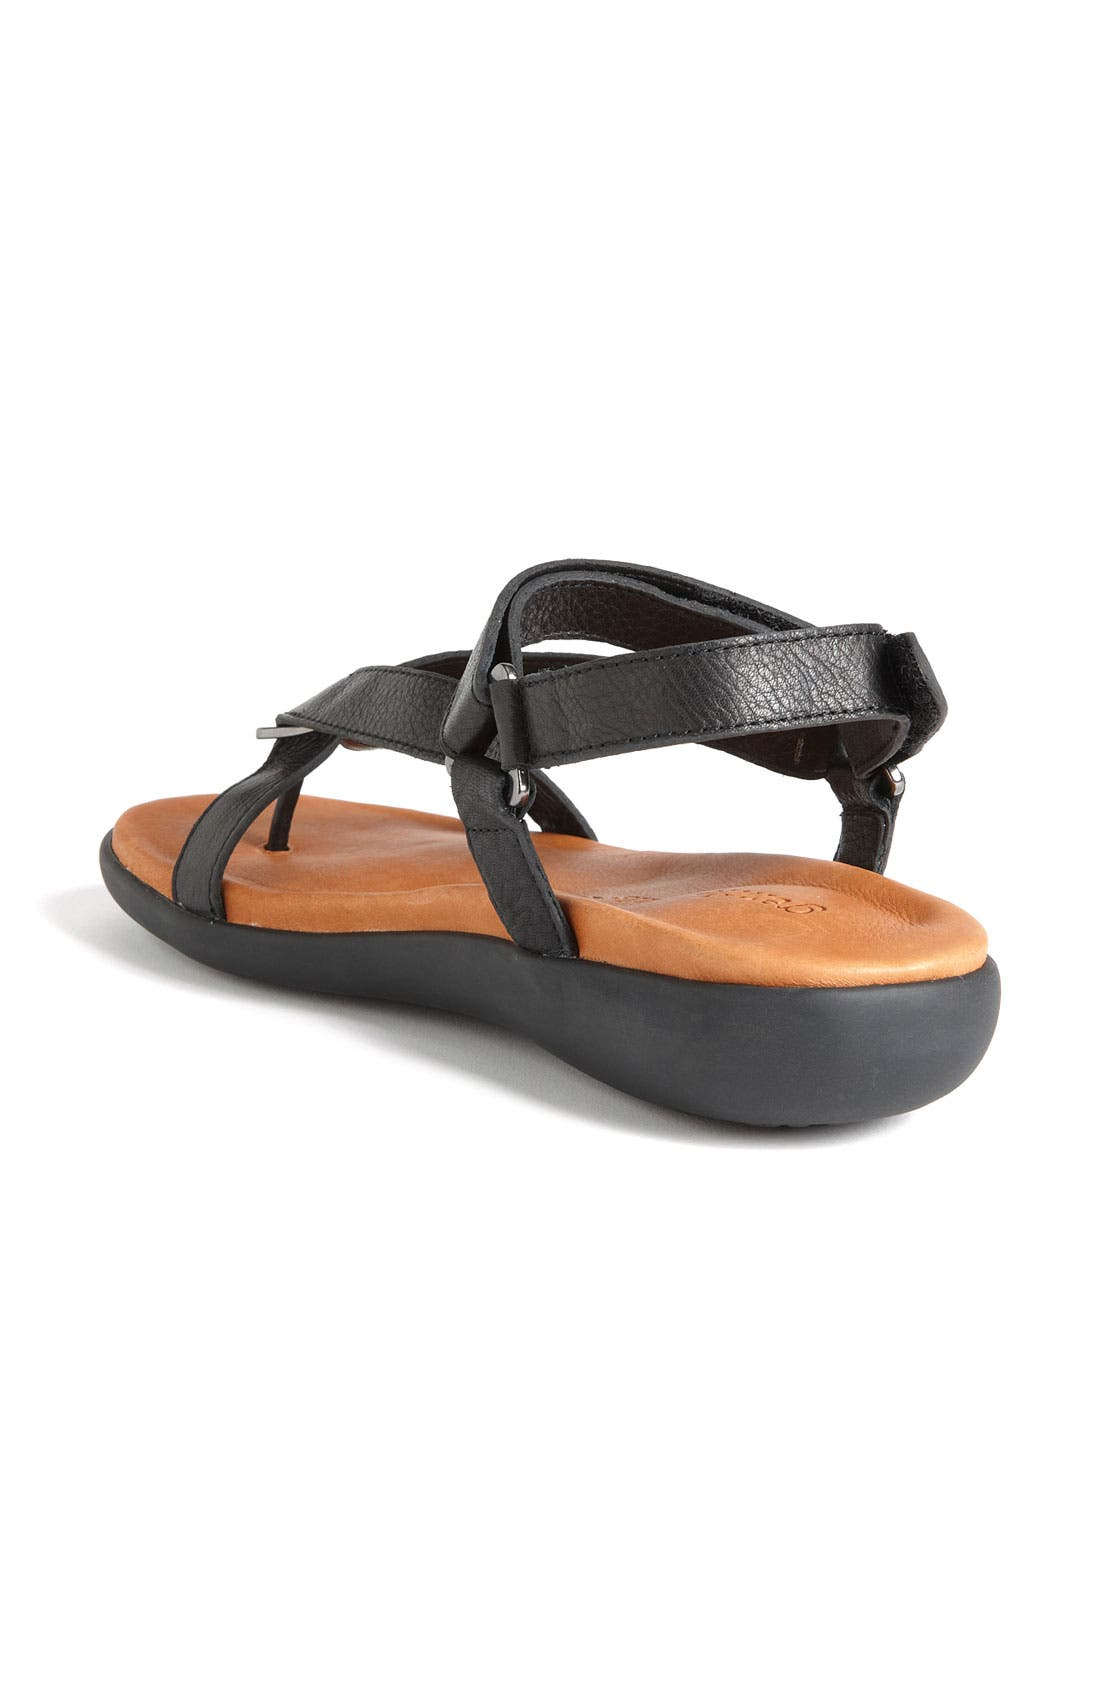 Gentle Souls 'Go Mingle' Sandal,                             Alternate thumbnail 2, color,                             001